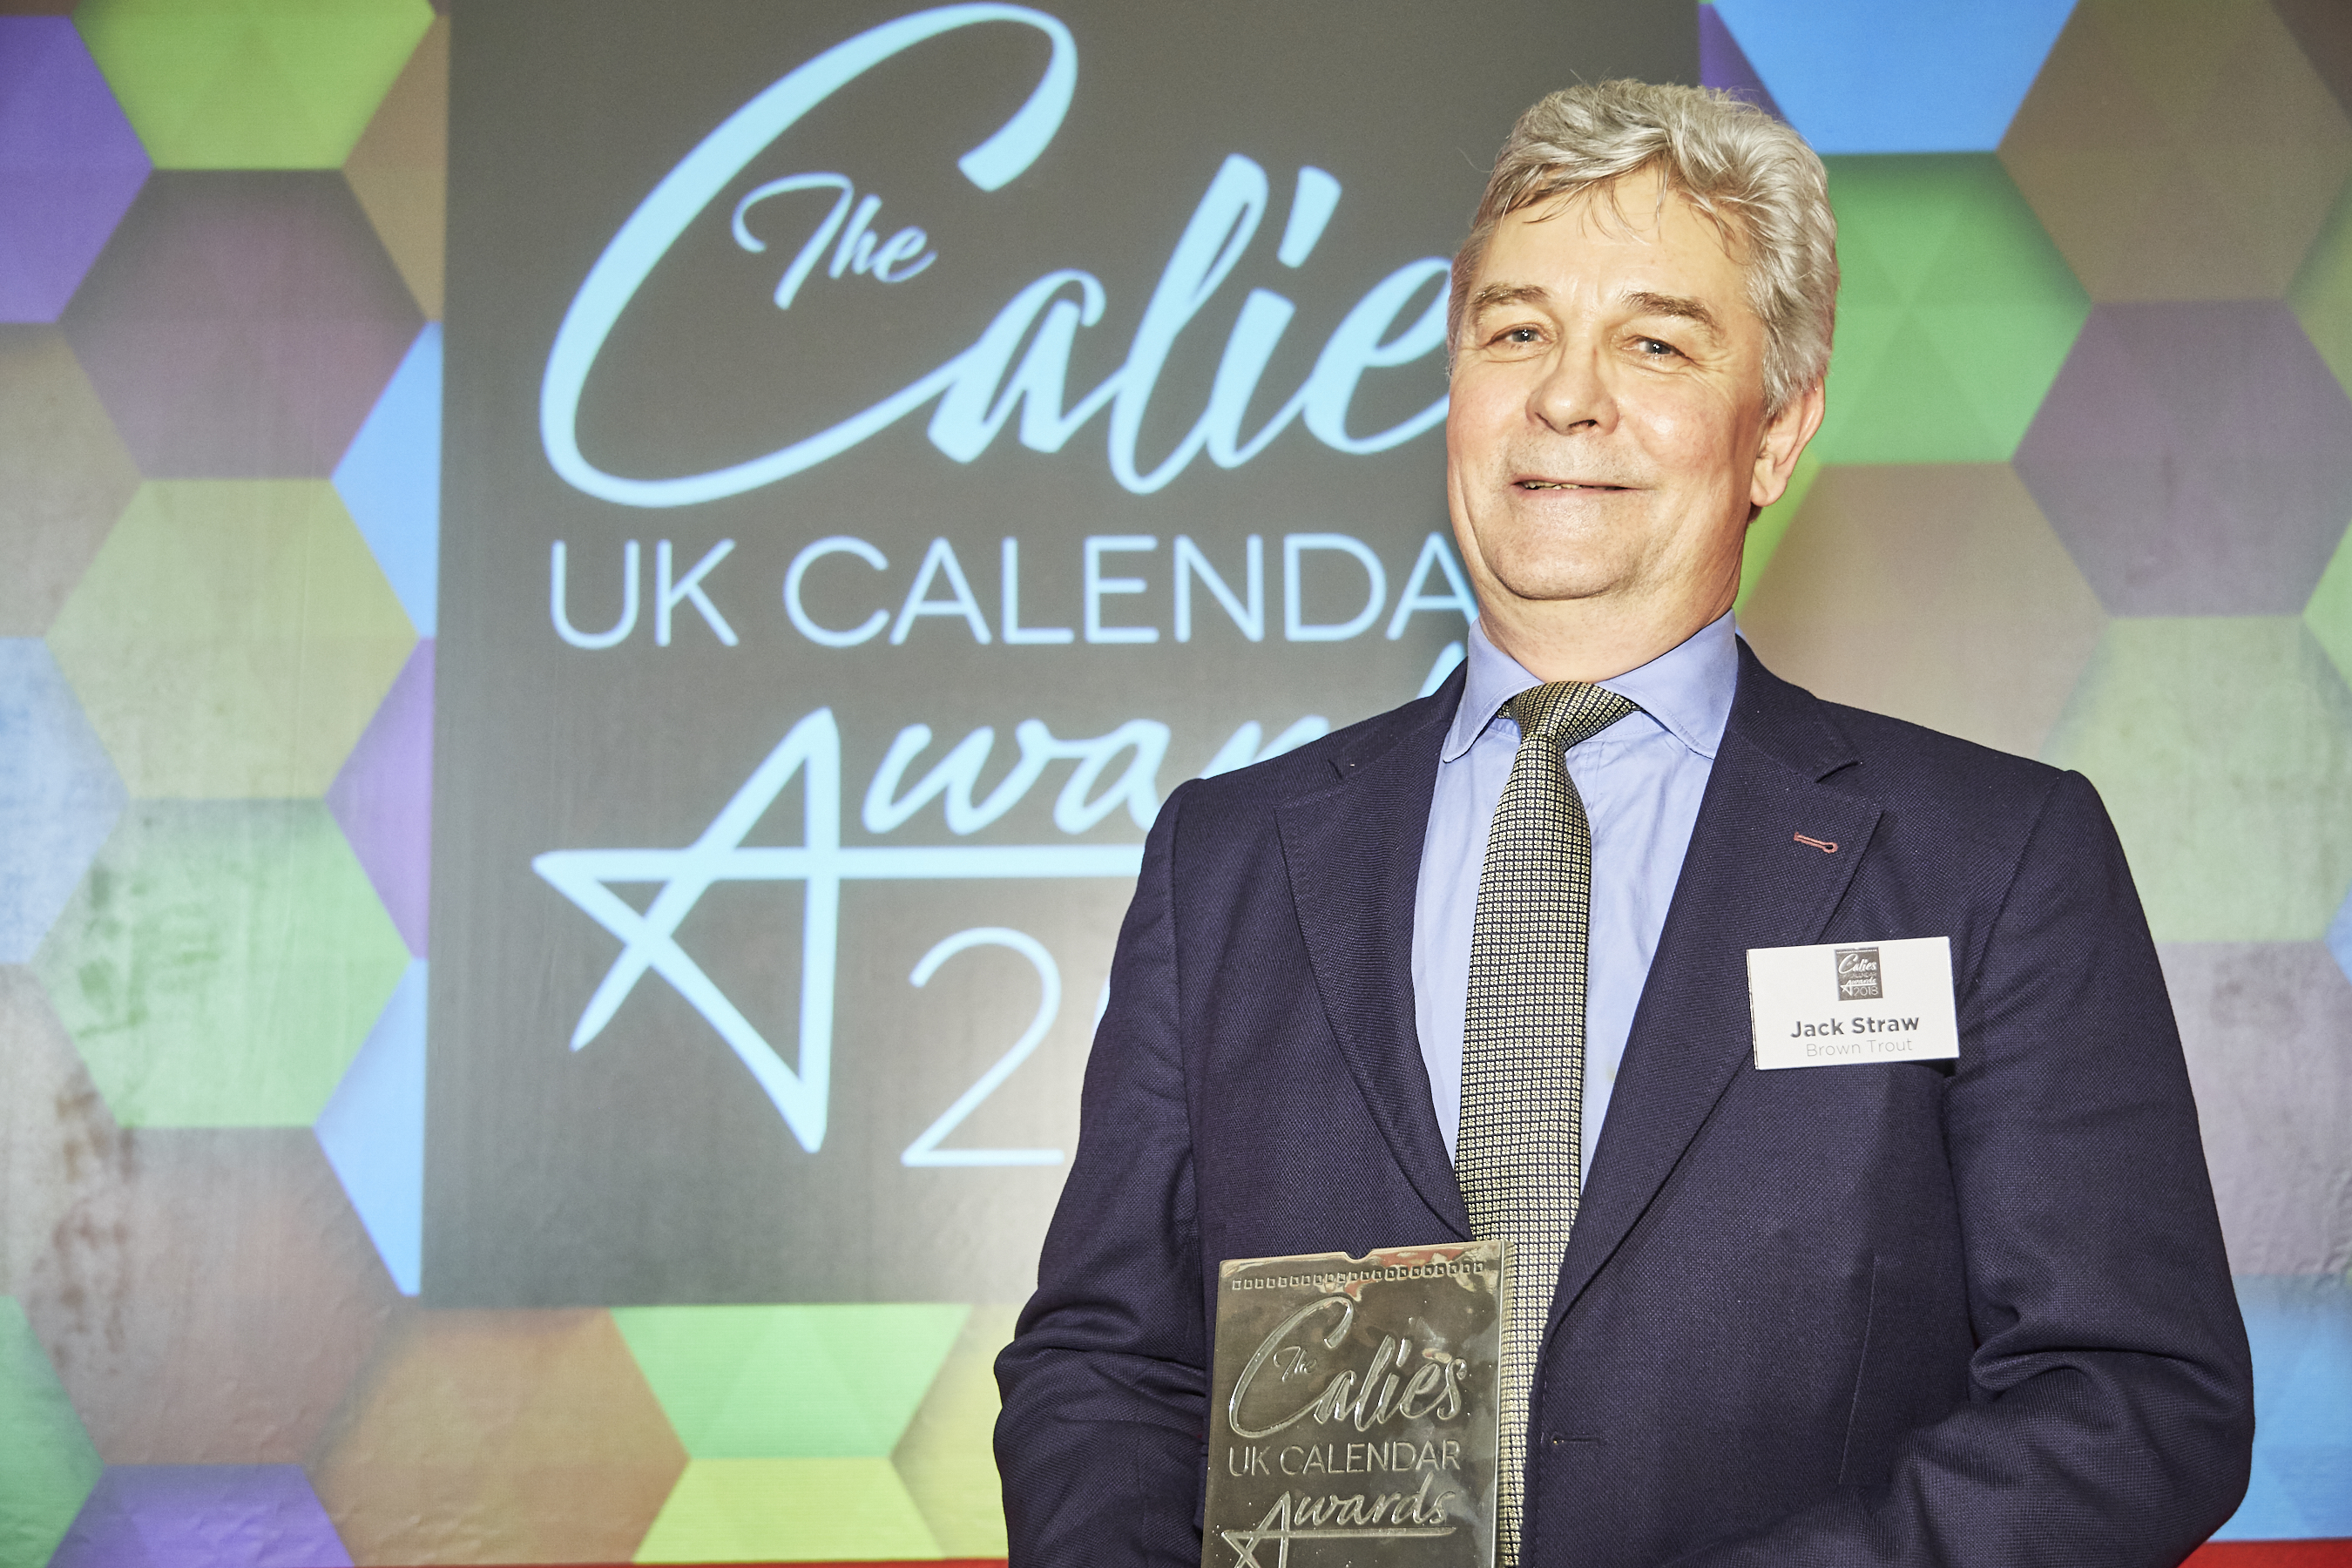 Above: In recognition of his contribution to the calendar sector, Jack Straw, md of BrownTrout UK was presented with a Calendar Ambassador award at The Calies calendar awards in 2018.